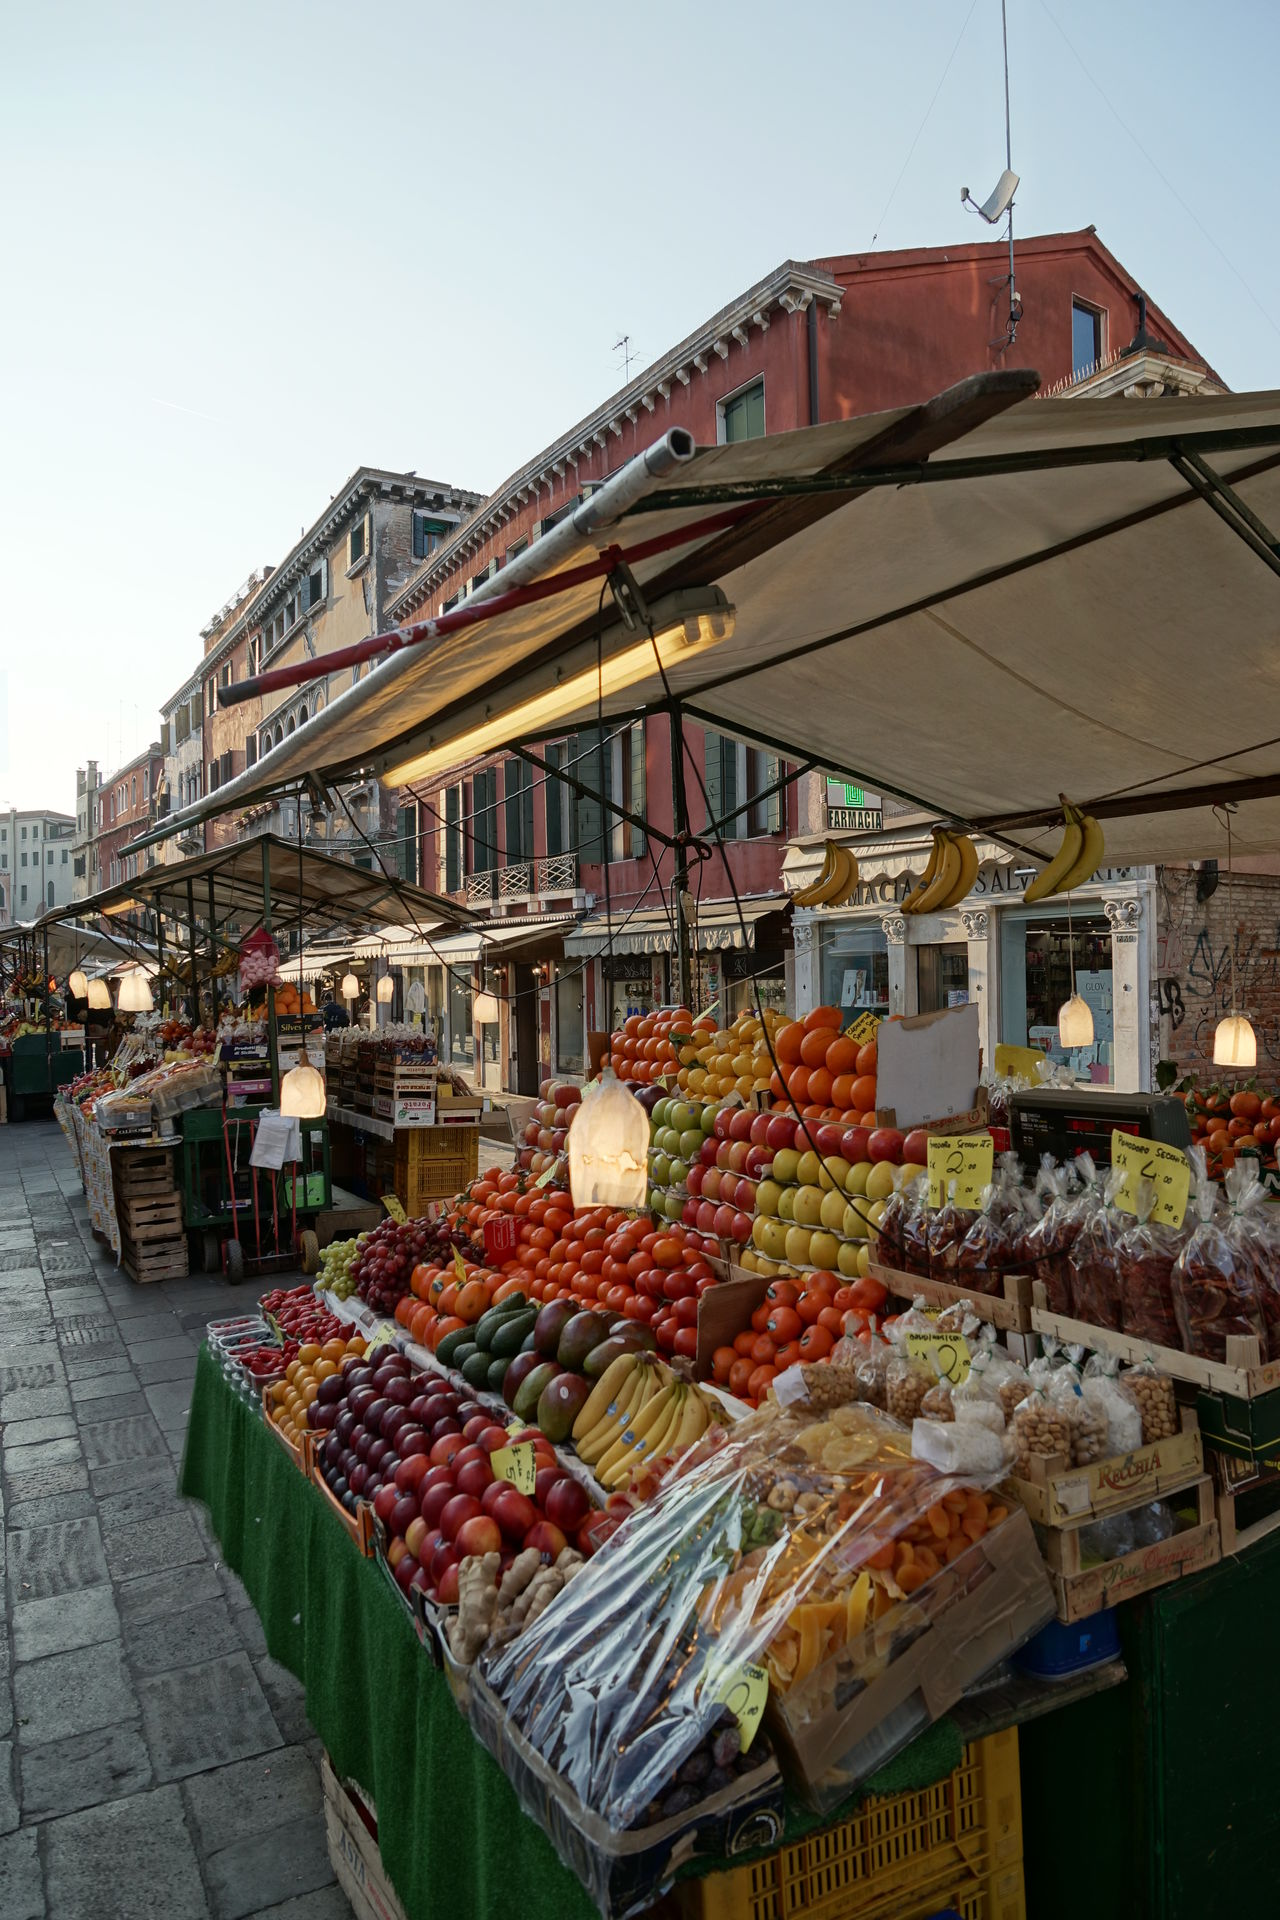 Market stall in Venice Ancient Architecture Cannaregio Dusk Dusk In The City Food Fruit Market Fruits Healthy Living Italy Lamp Lantern Market Stall No People Old City Pedestrian Pedestrian Area Sunny Sunny Day Tourism Tourism Destination Travel Location Twilight Twilight Hour Venetian Venice, Italy